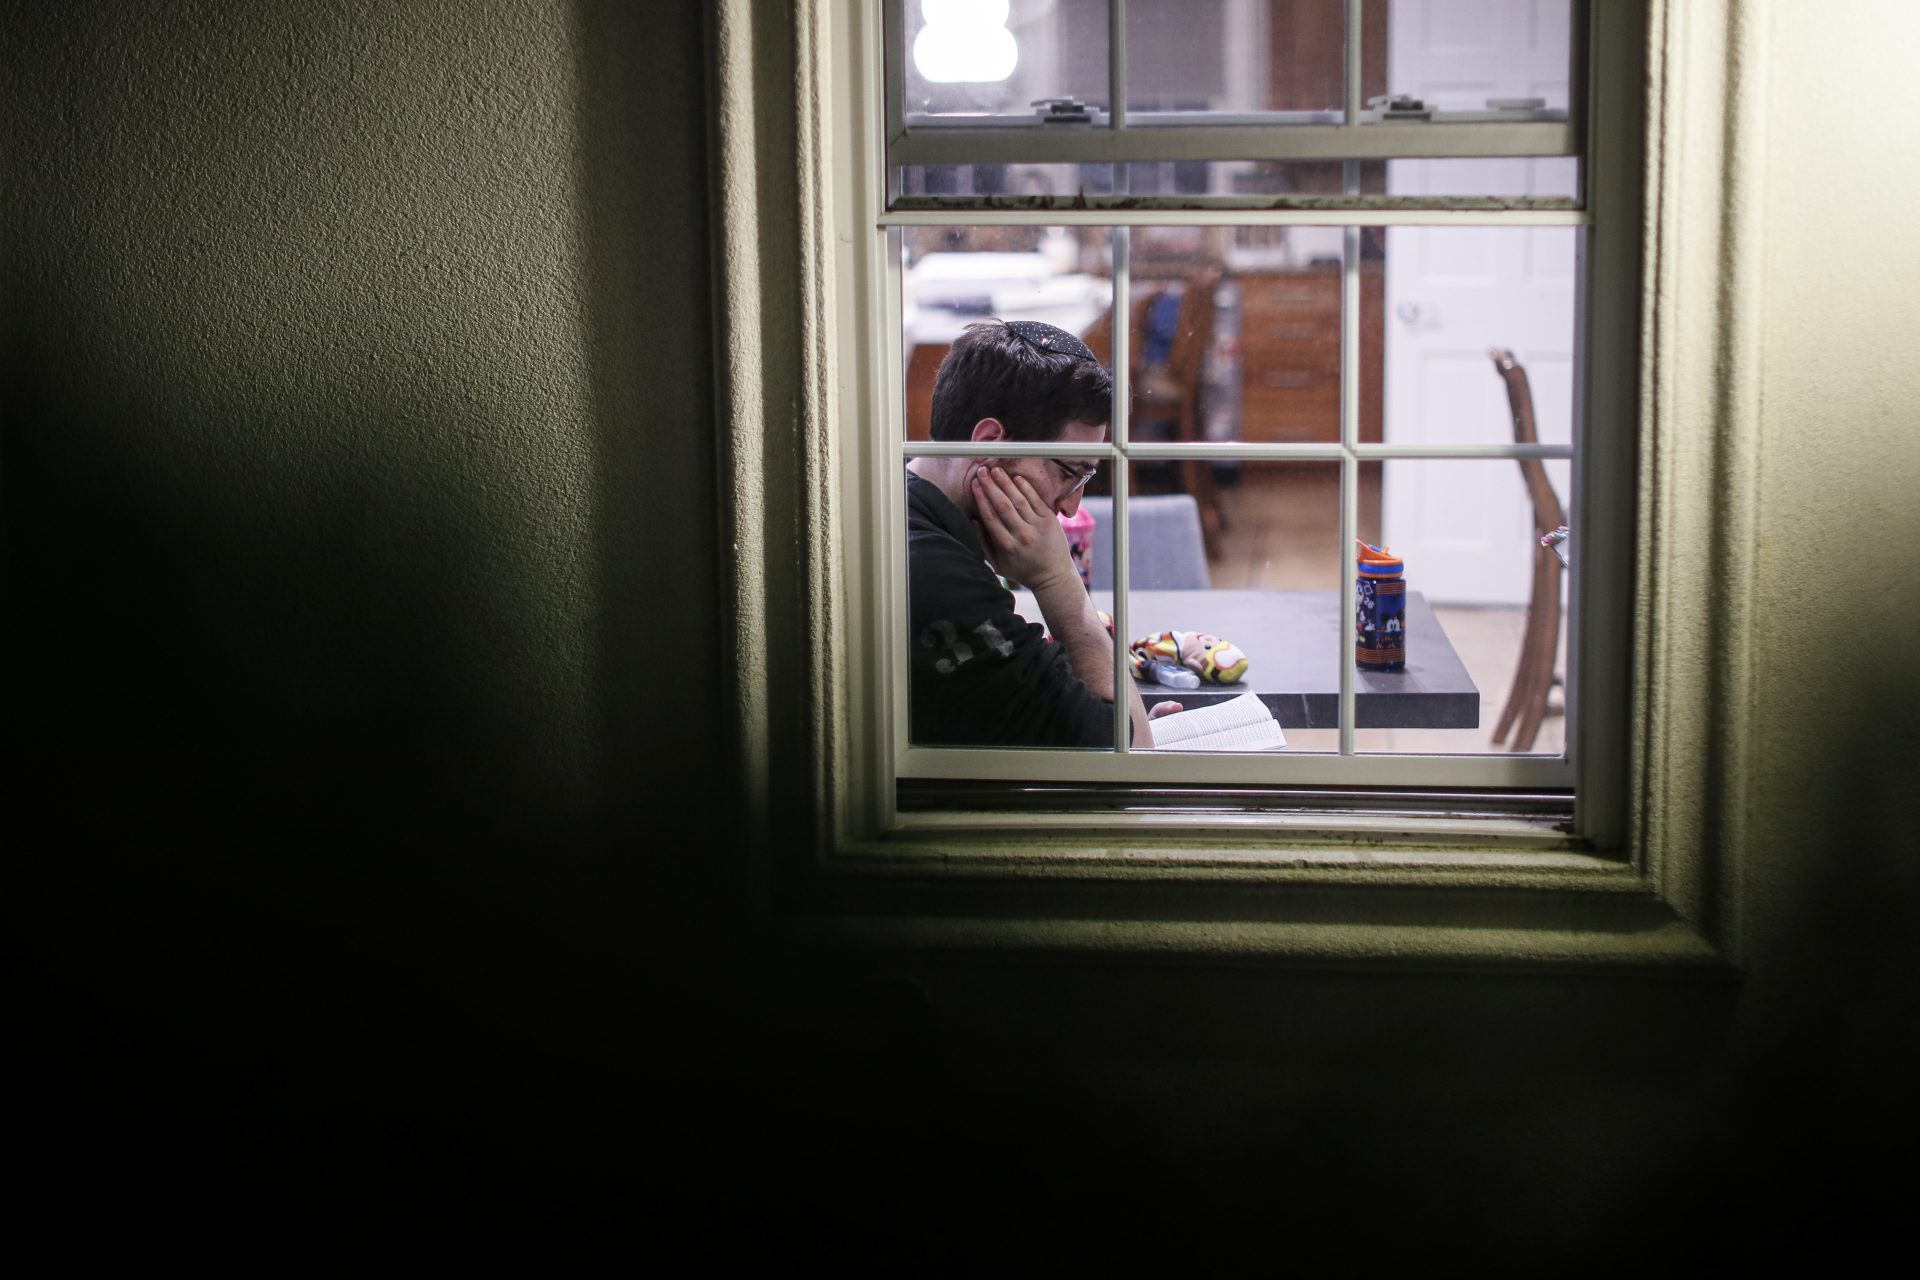 FILE PHOTO: A self-quarantined resident who says he tested positive for COVID-19 listens beside his window as volunteers perform a Purim reading from the Book of Esther, Monday, March 9, 2020, in New Rochelle, N.Y.